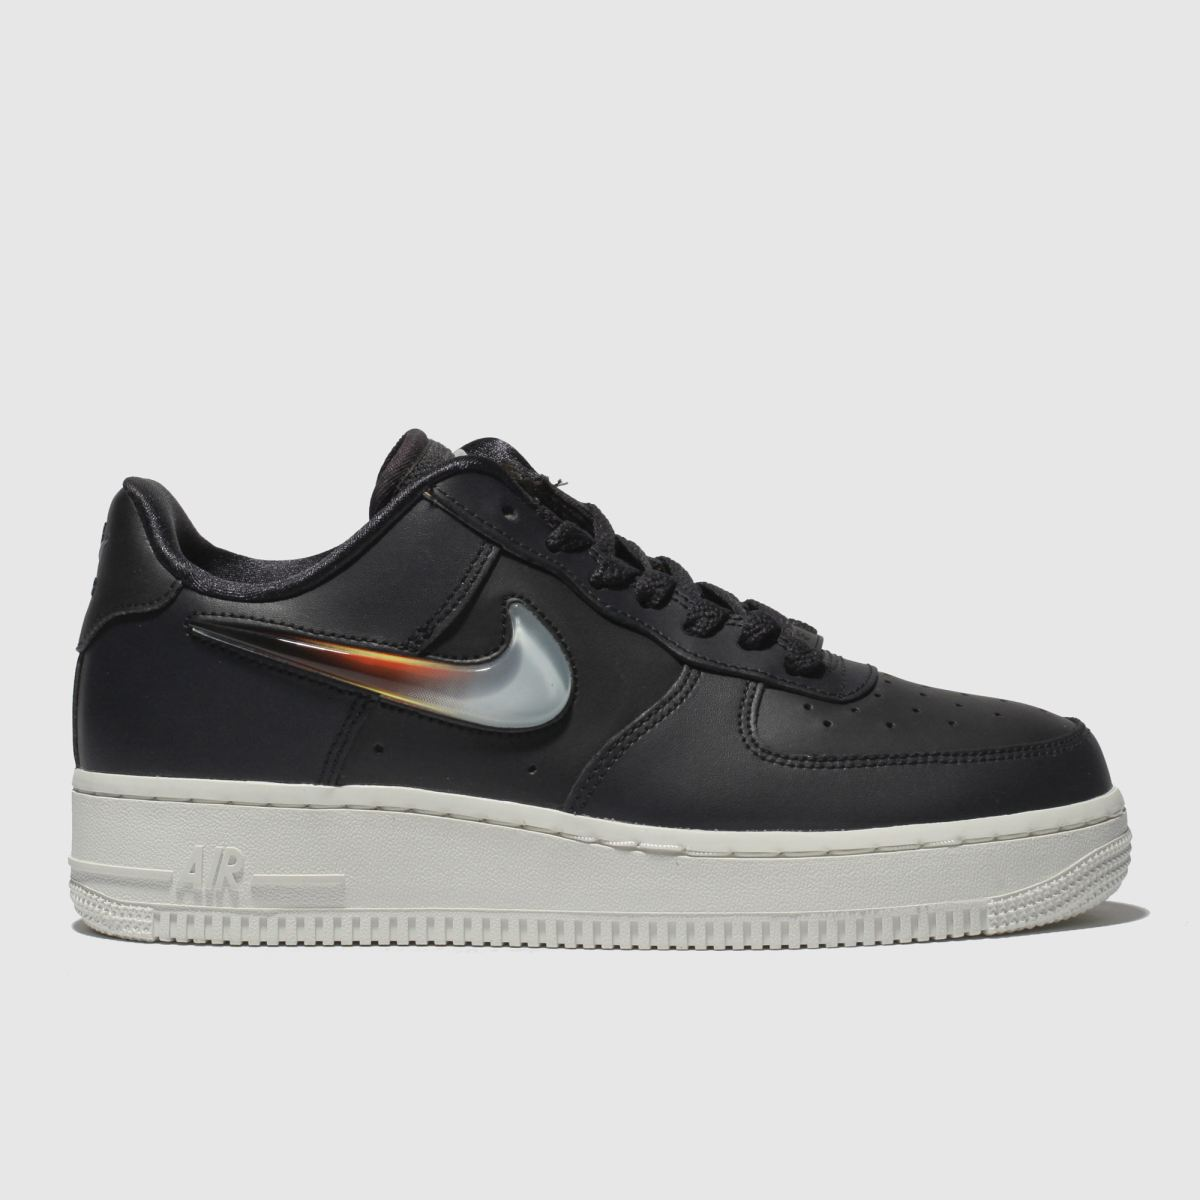 best service 12daf d2a95 Nike Dark Grey Air Force 1 Premium Jelly Trainers - £80.00 - Bullring    Grand Central